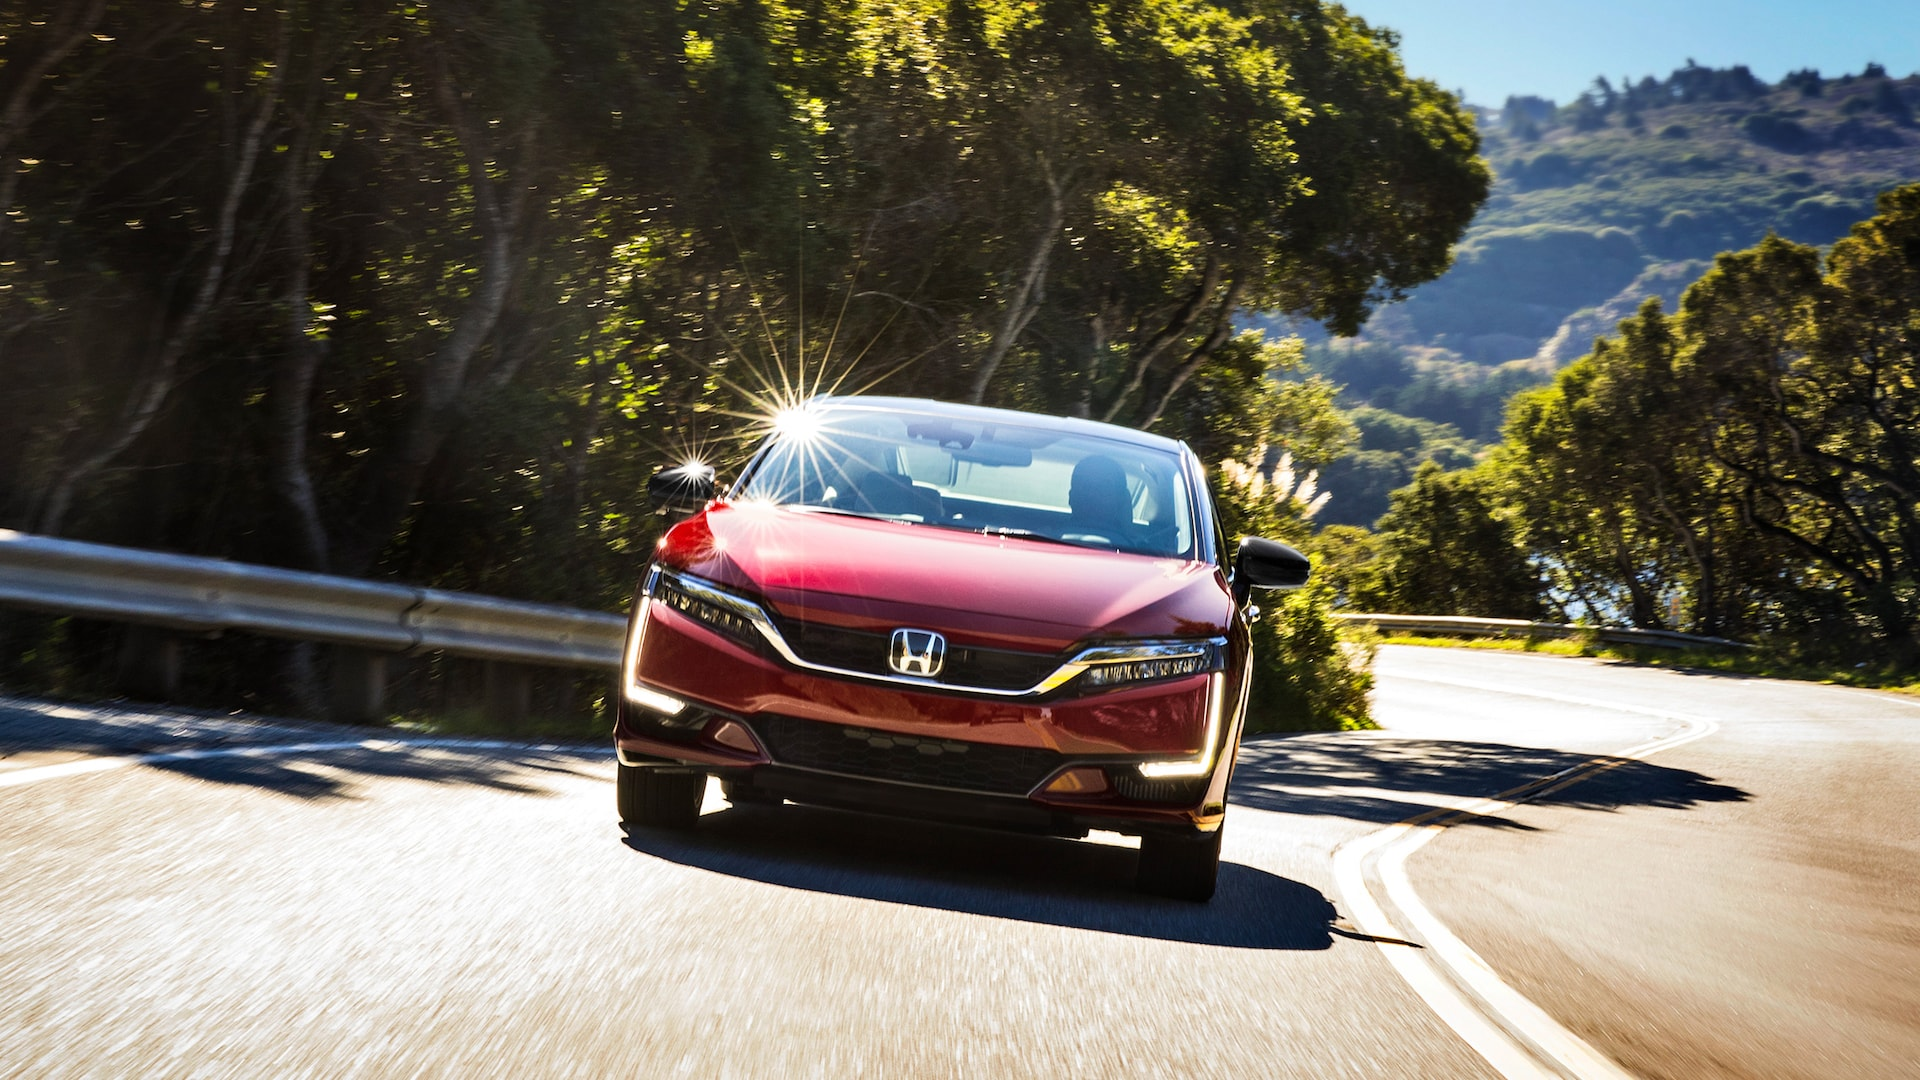 Front view of 2020 Honda Clarity Fuel Cell in Crimson Pearl driving on winding road.